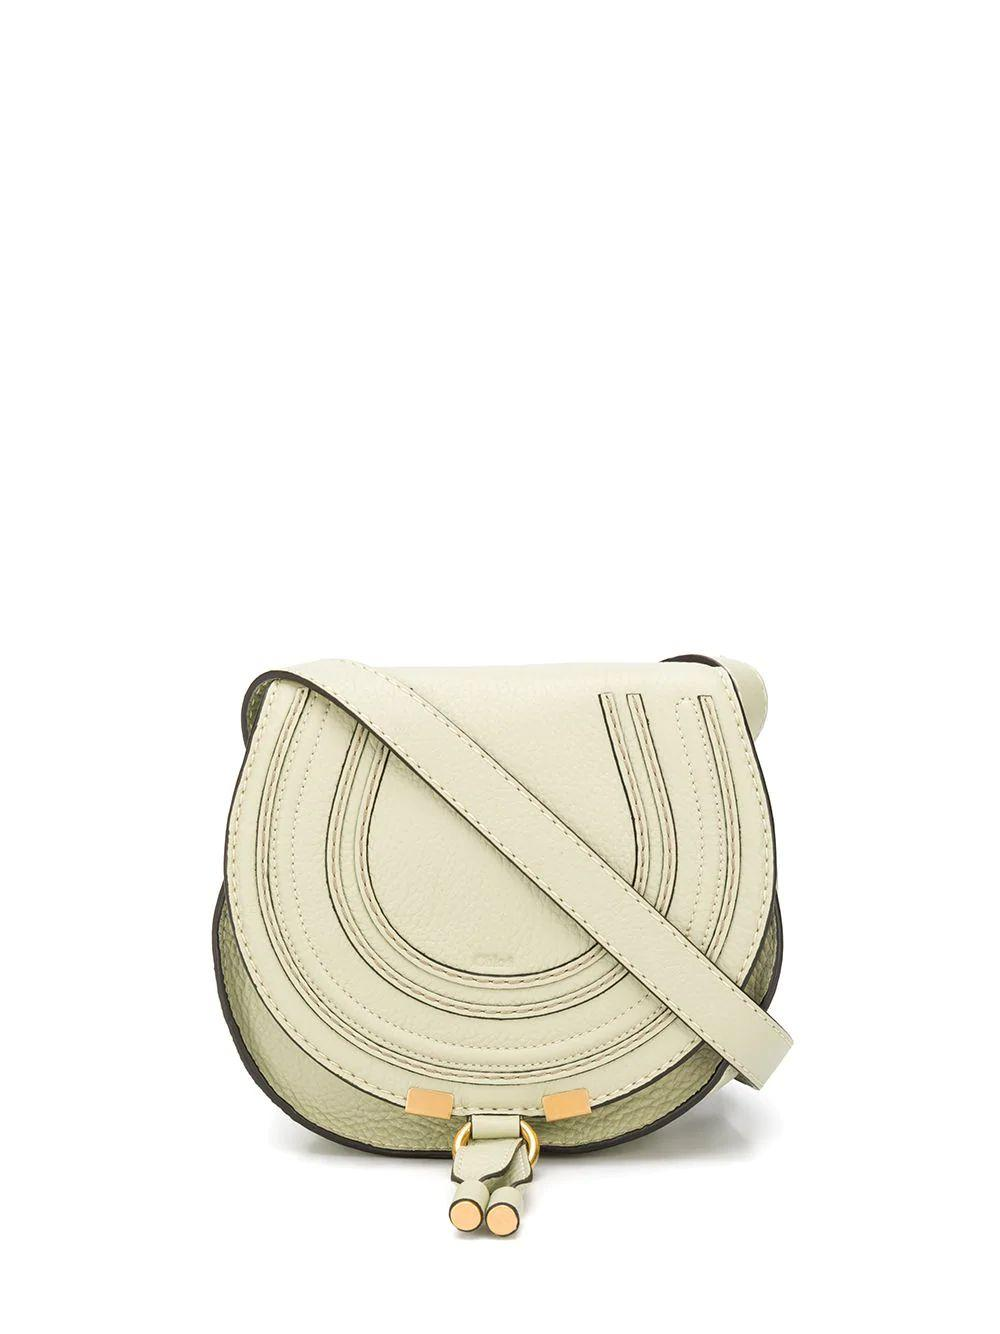 Marcie Small Saddle Bag